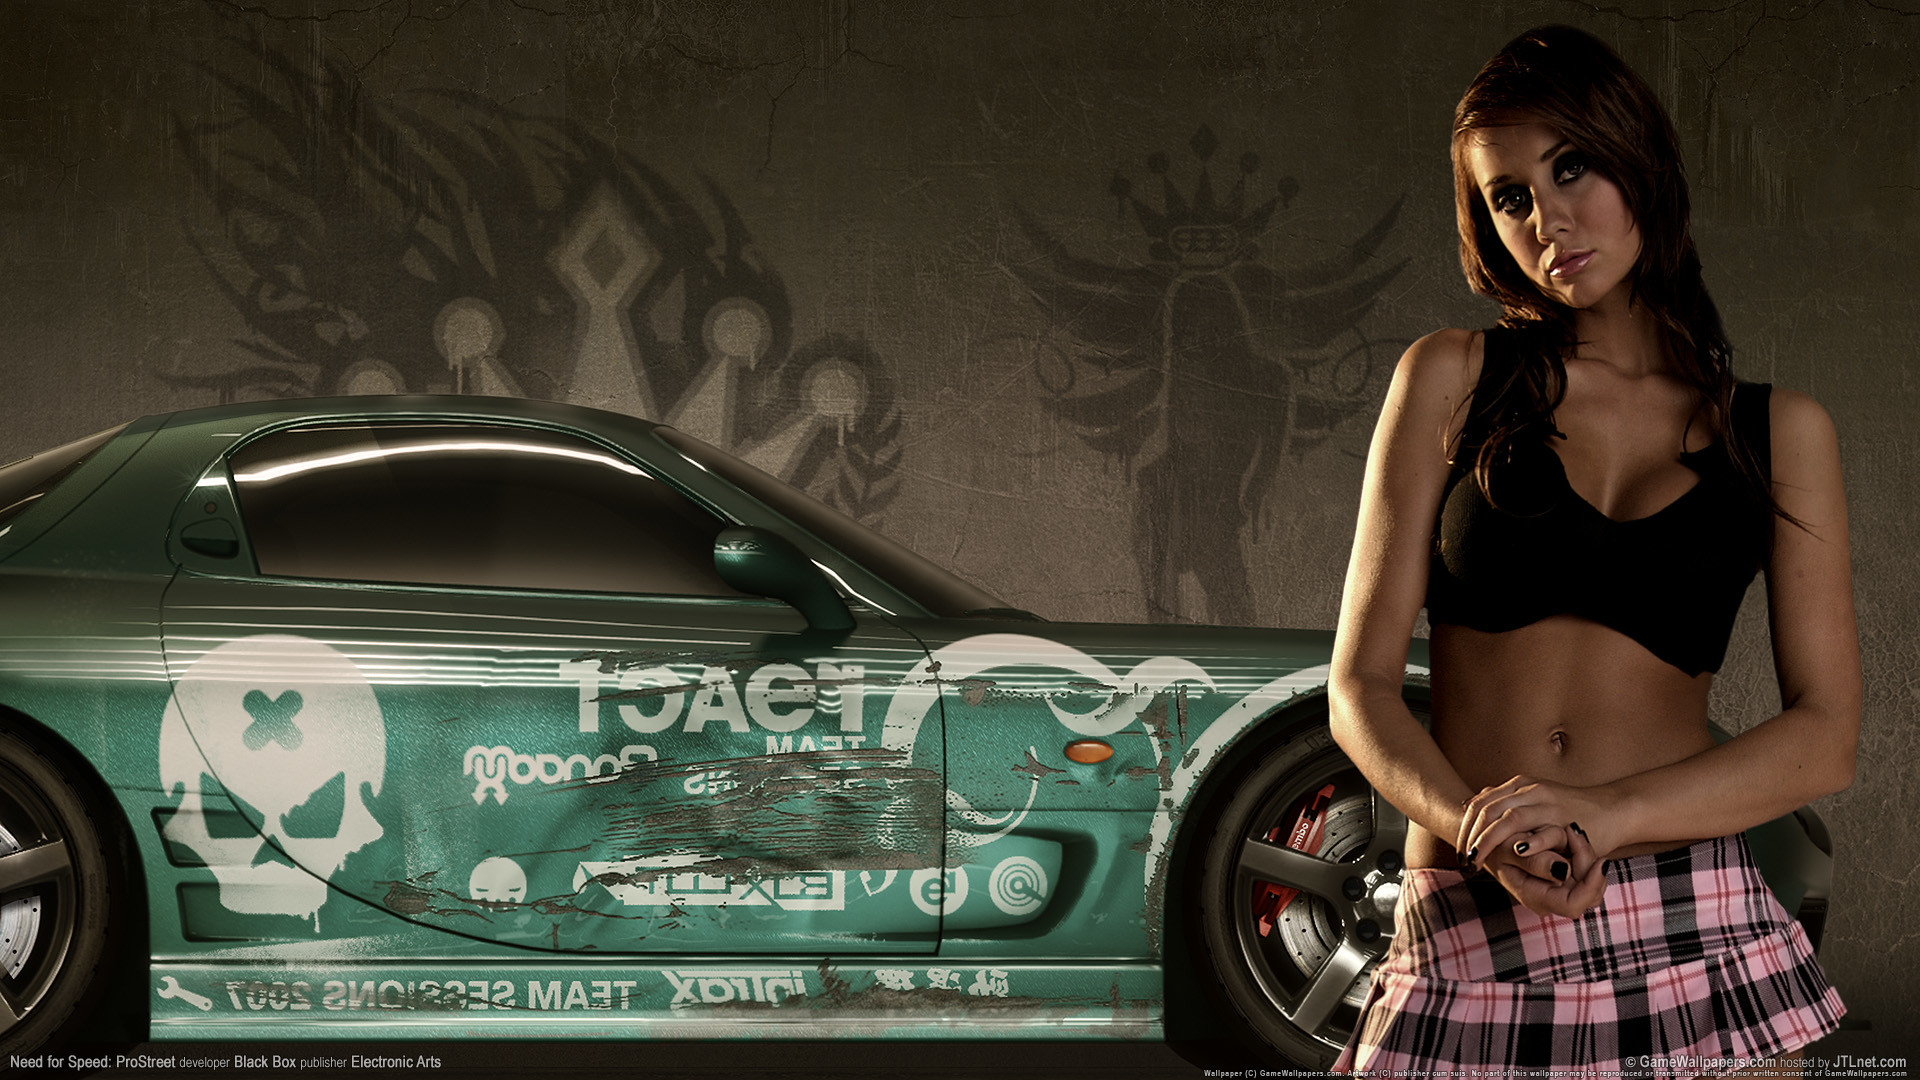 1920x1080 need for speed prostreet girls 2 HD